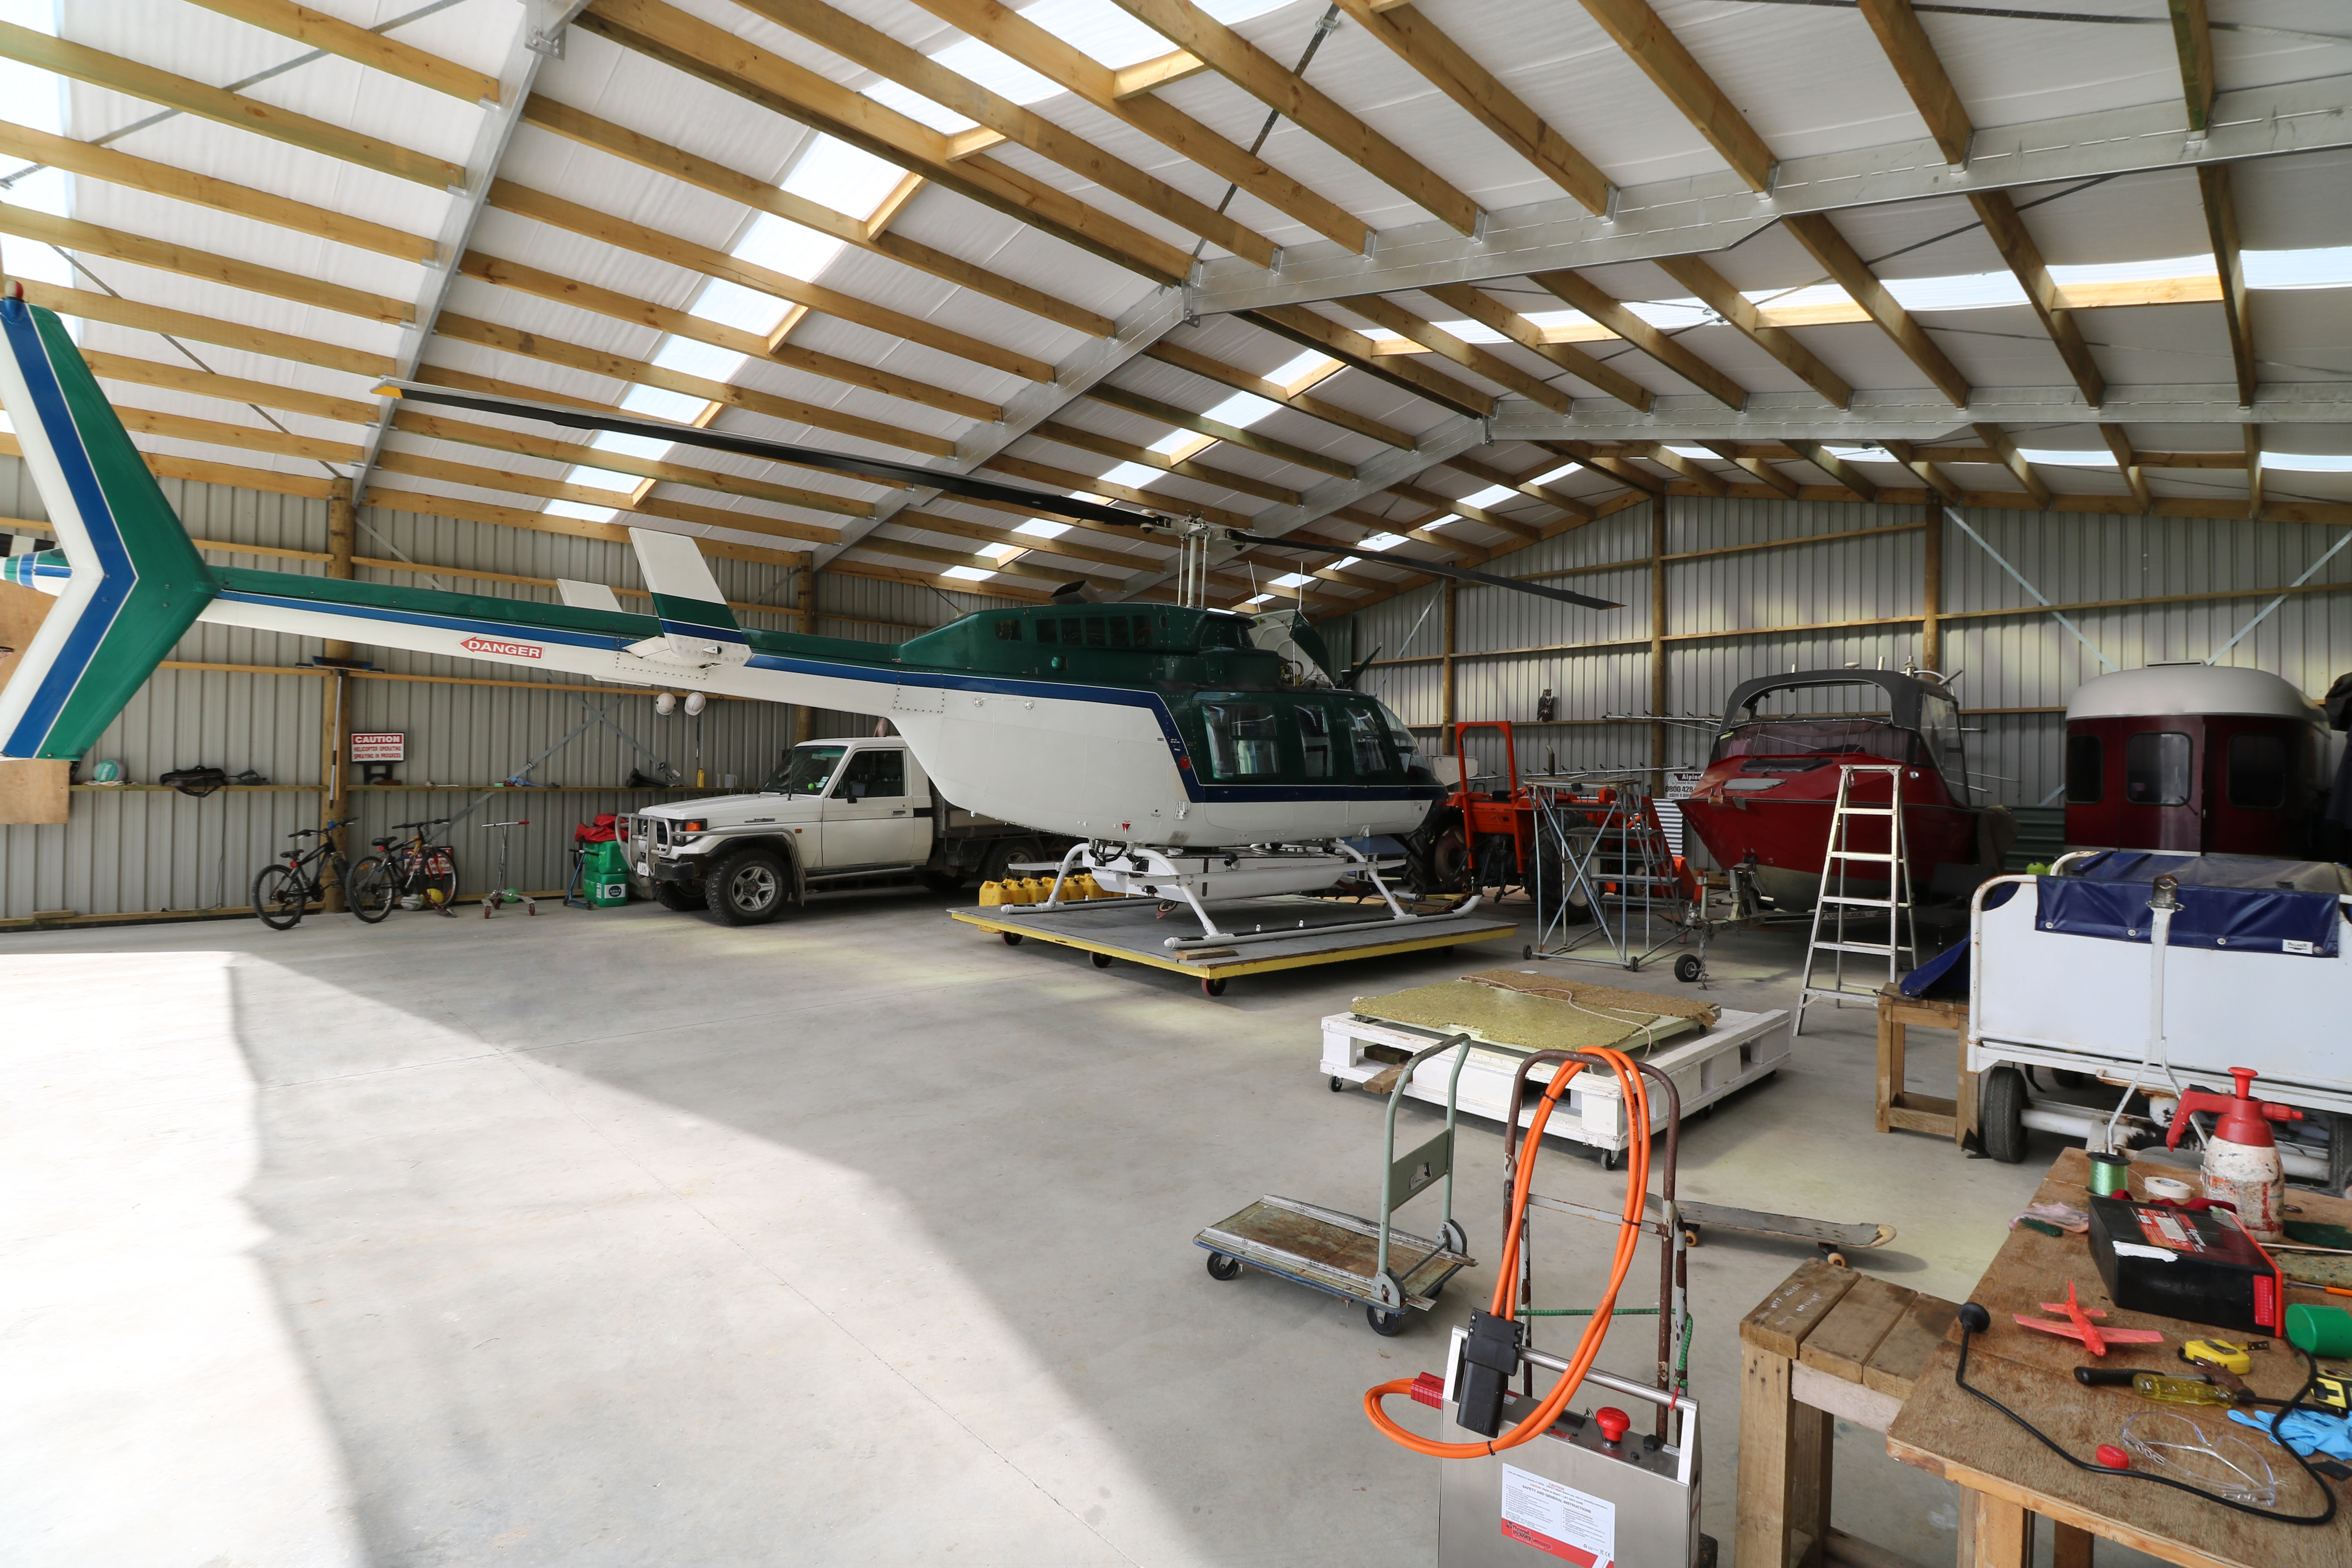 24m long aircraft hangar